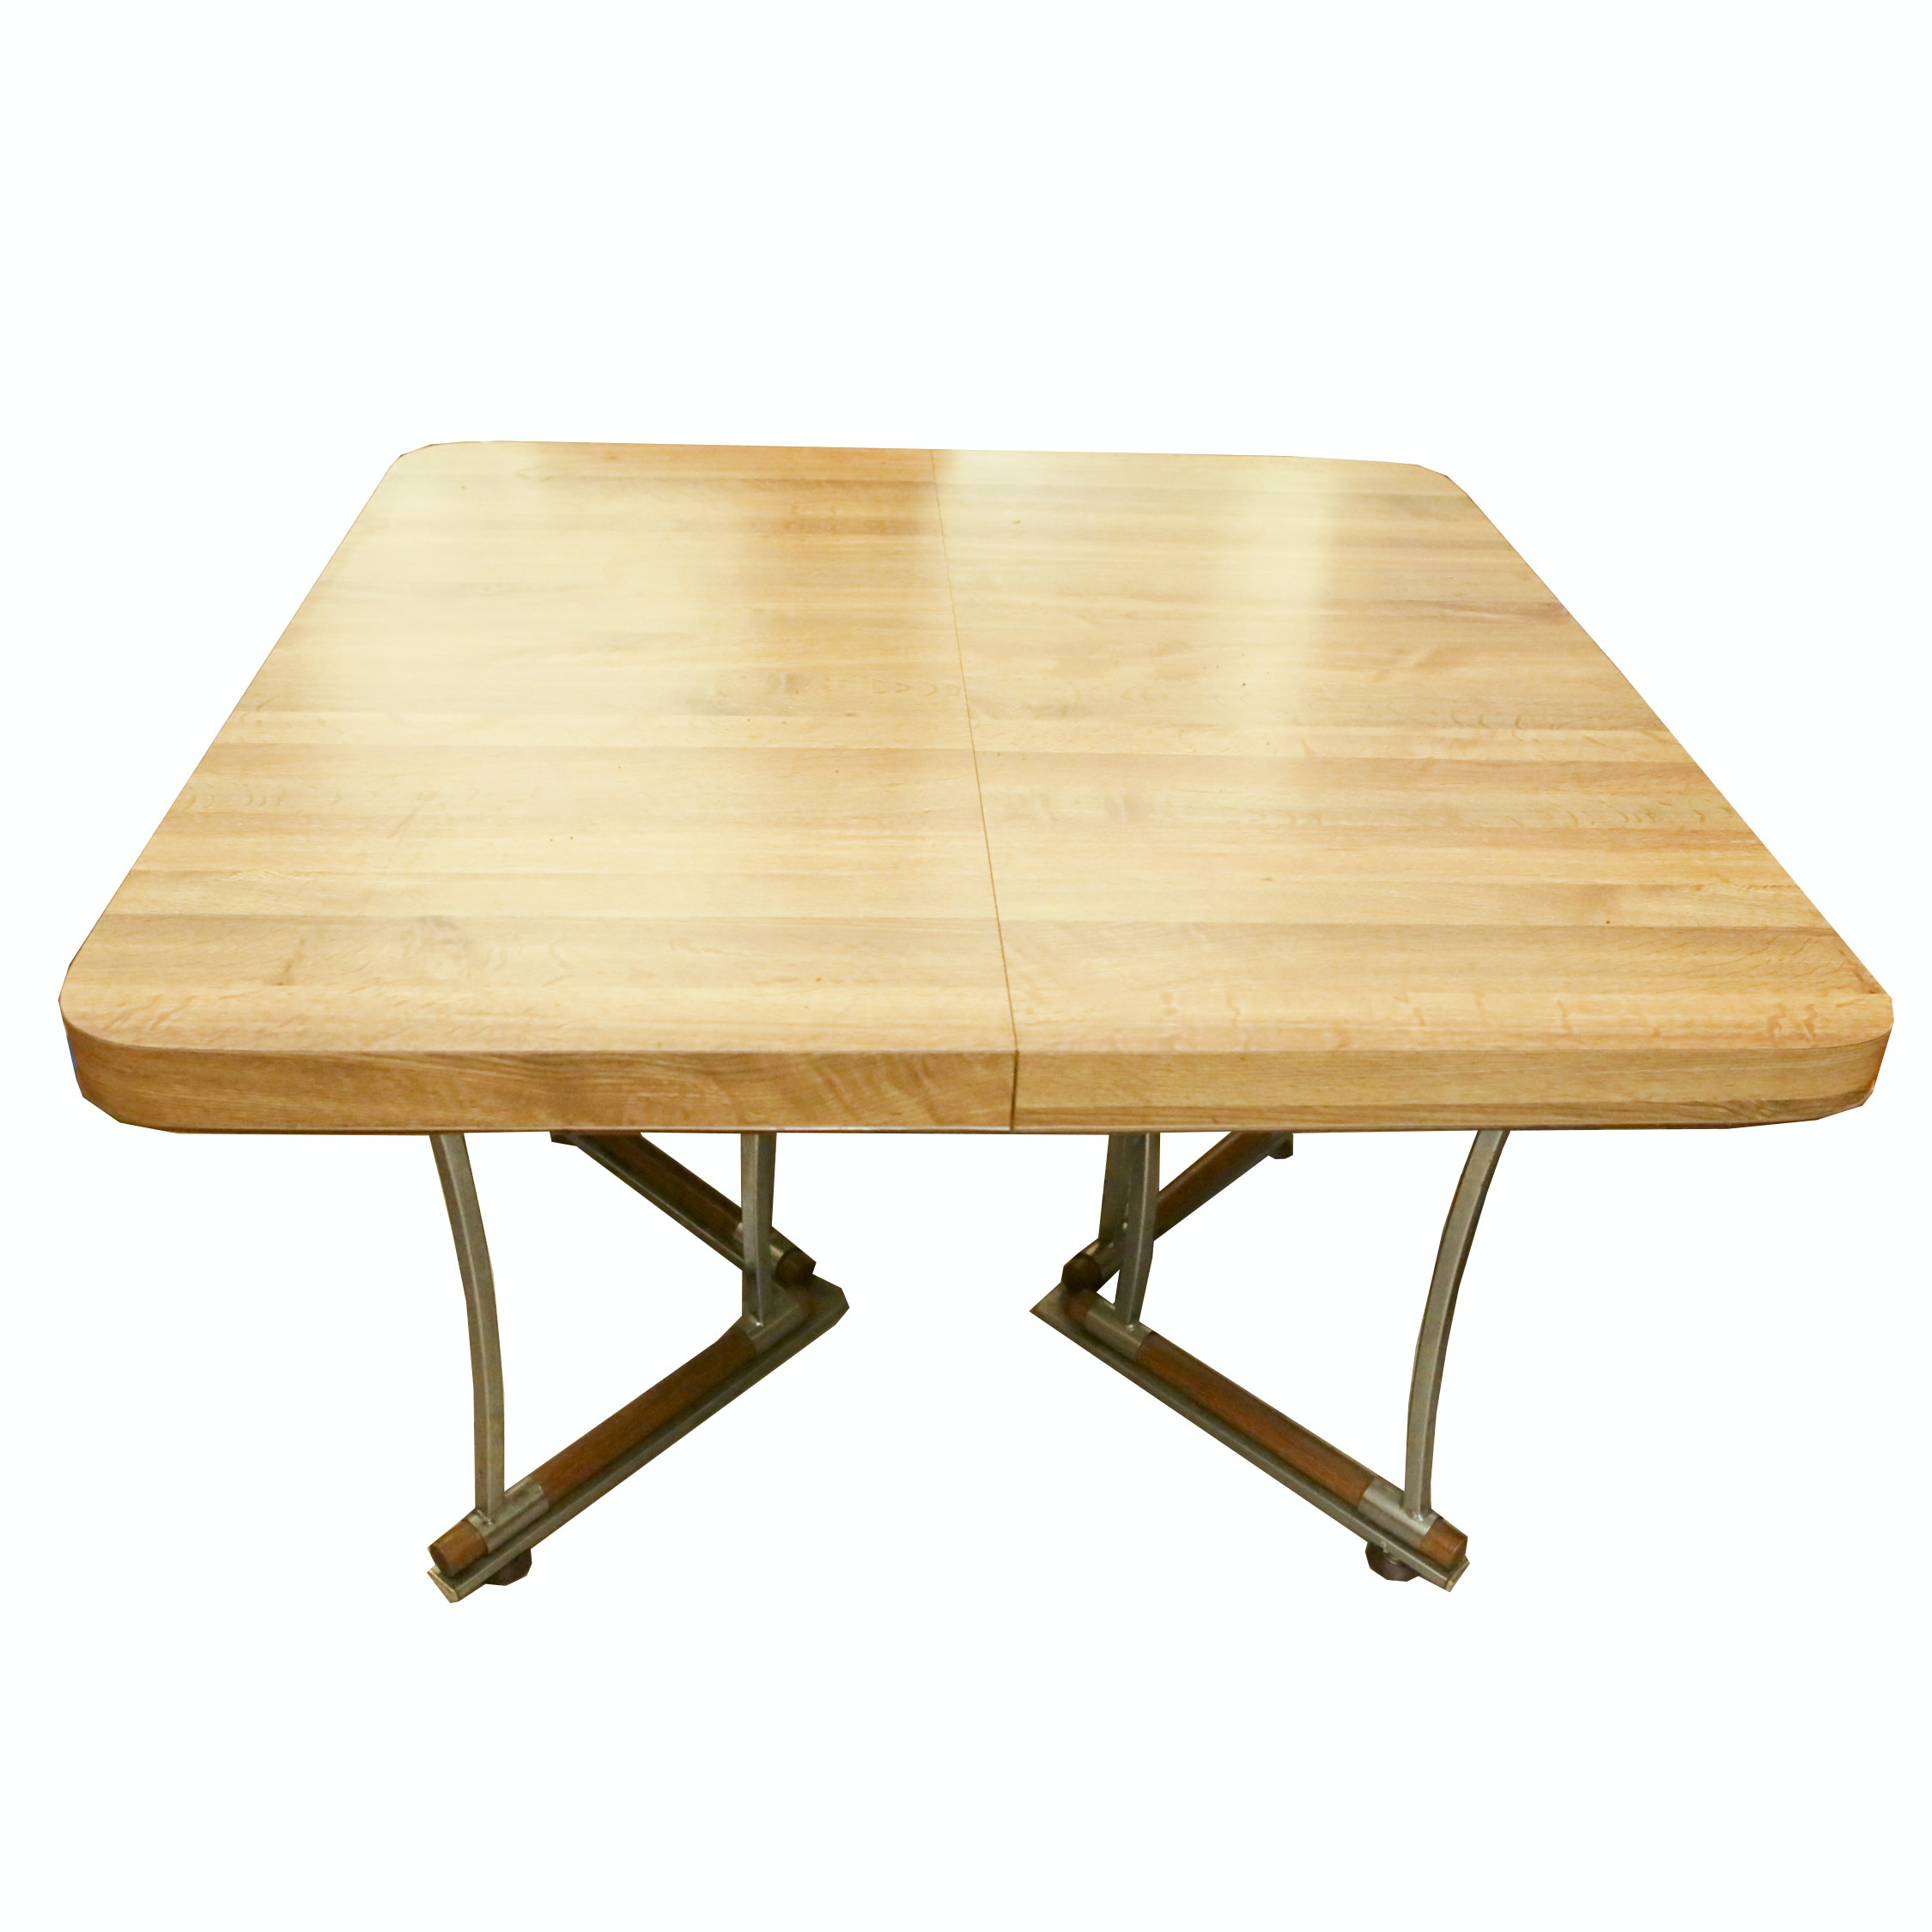 Vintage Wood Grain Laminate and Metal Dining Table